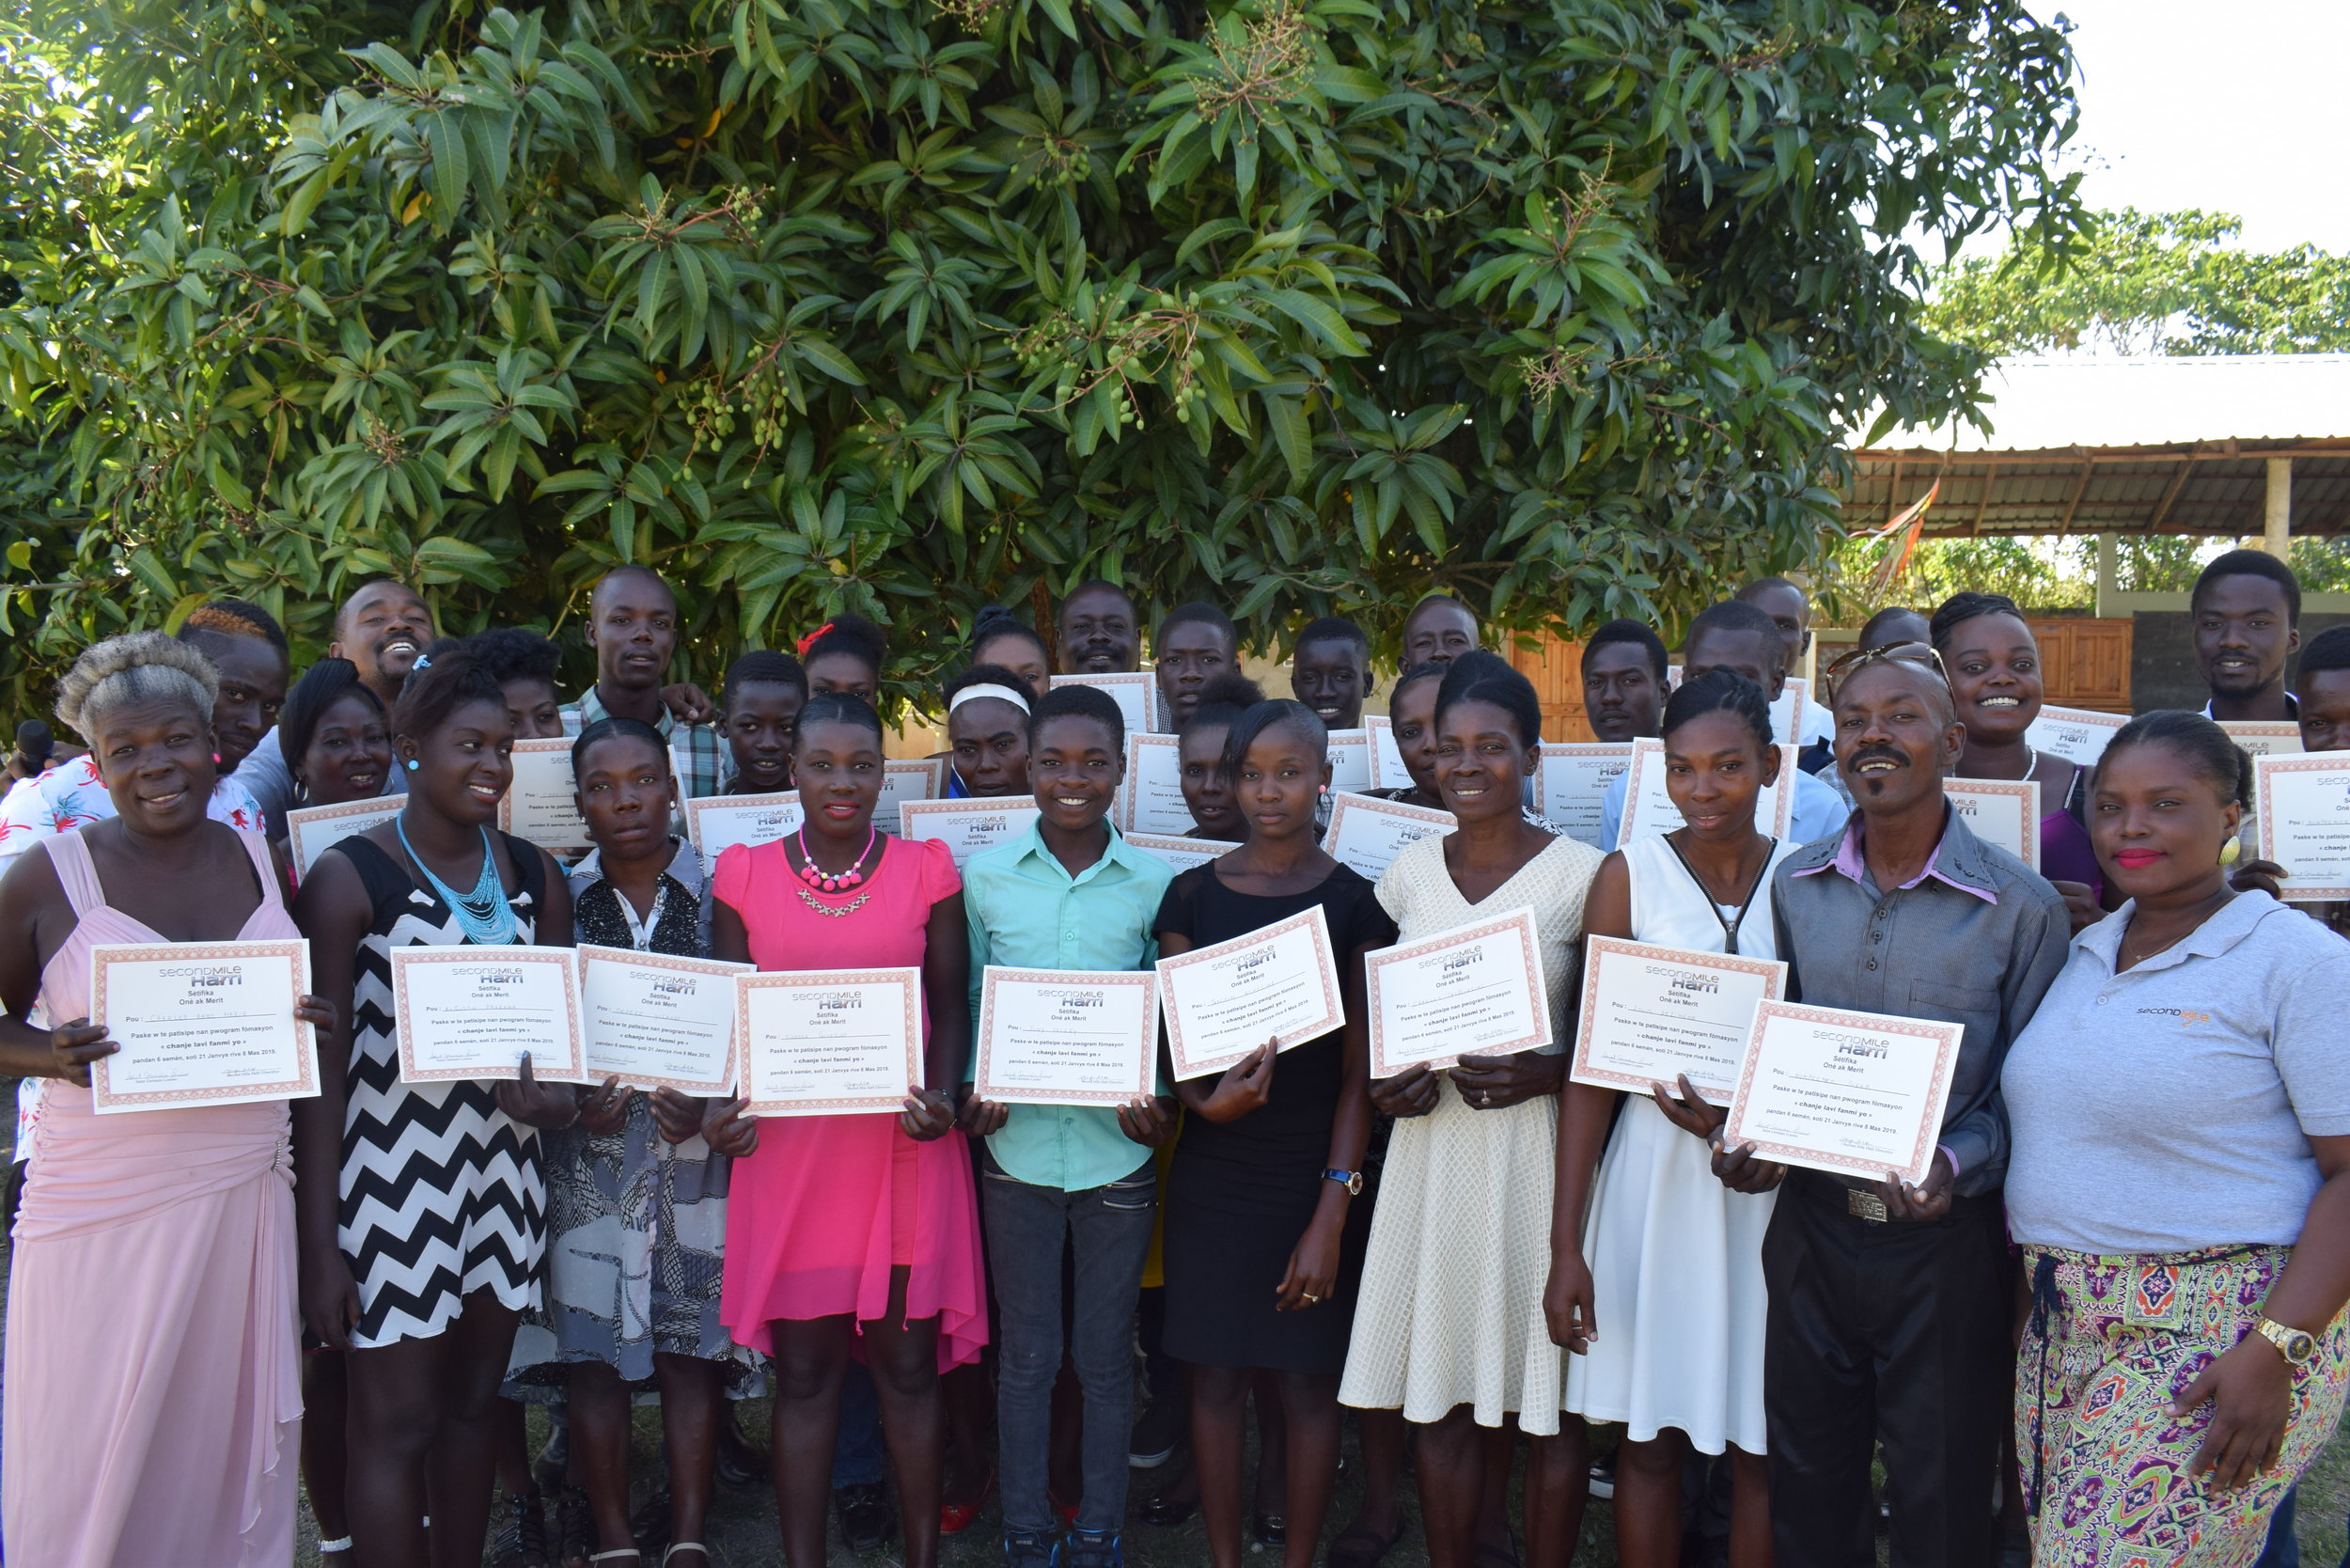 Graduates of the 7th Community Education cohort display their certificates of completion